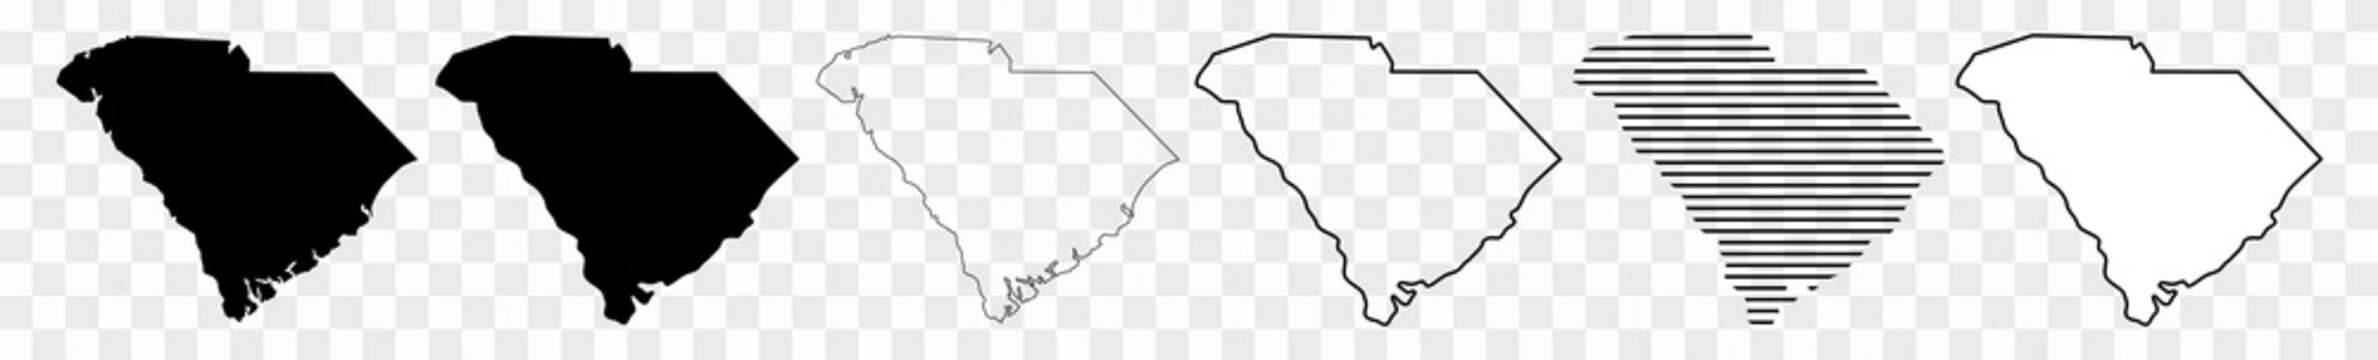 South Carolina Map Black | State Border | United States | US America | Transparent Isolated | Variations